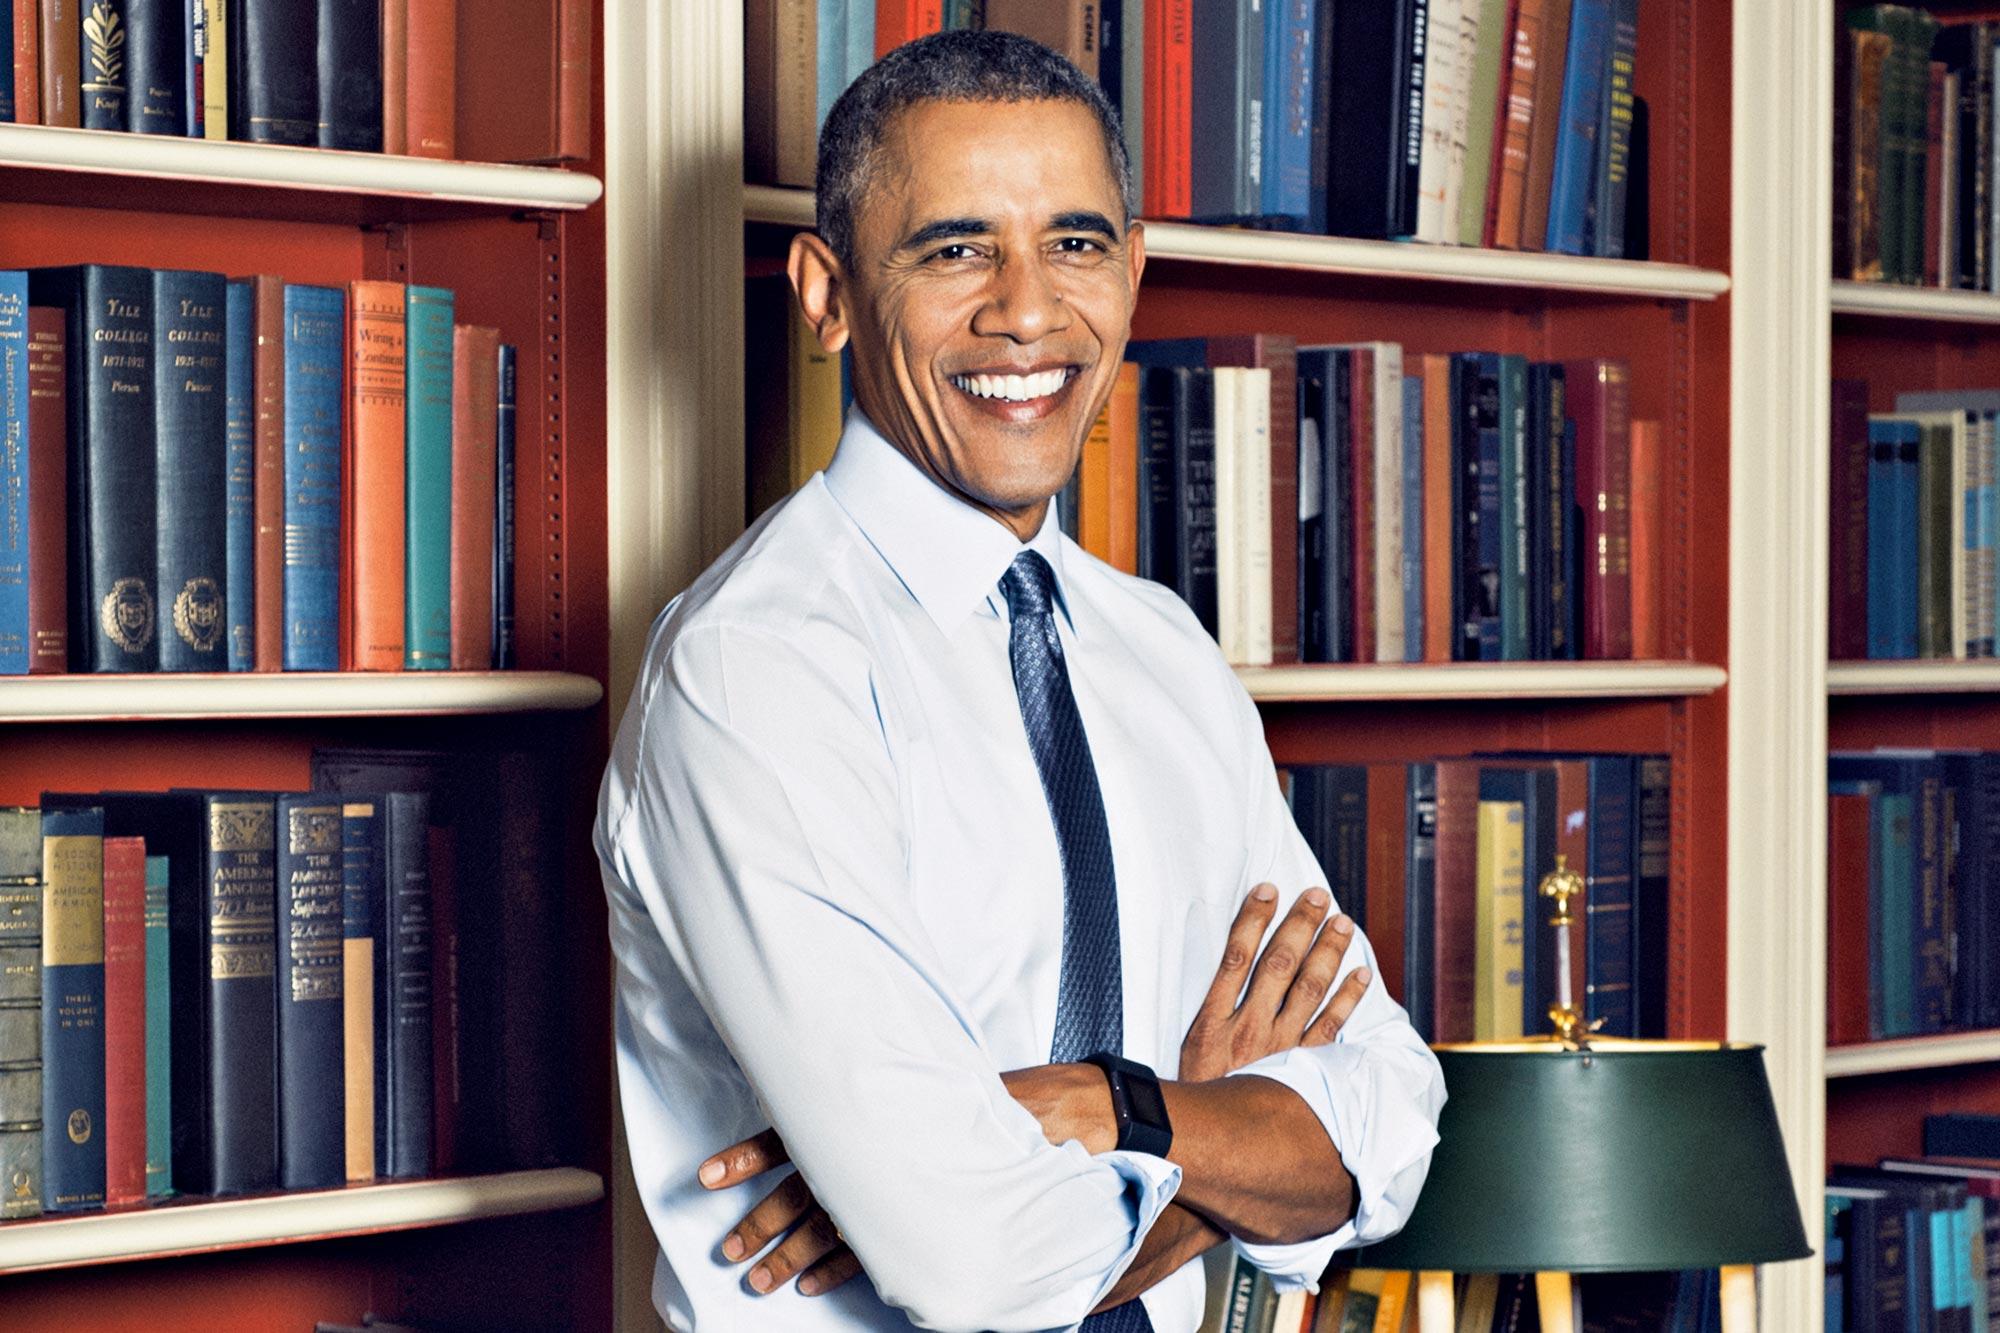 Barack Obama Phone number, Email Id, Fanmail, Instagram, Tiktok, and Contact Details